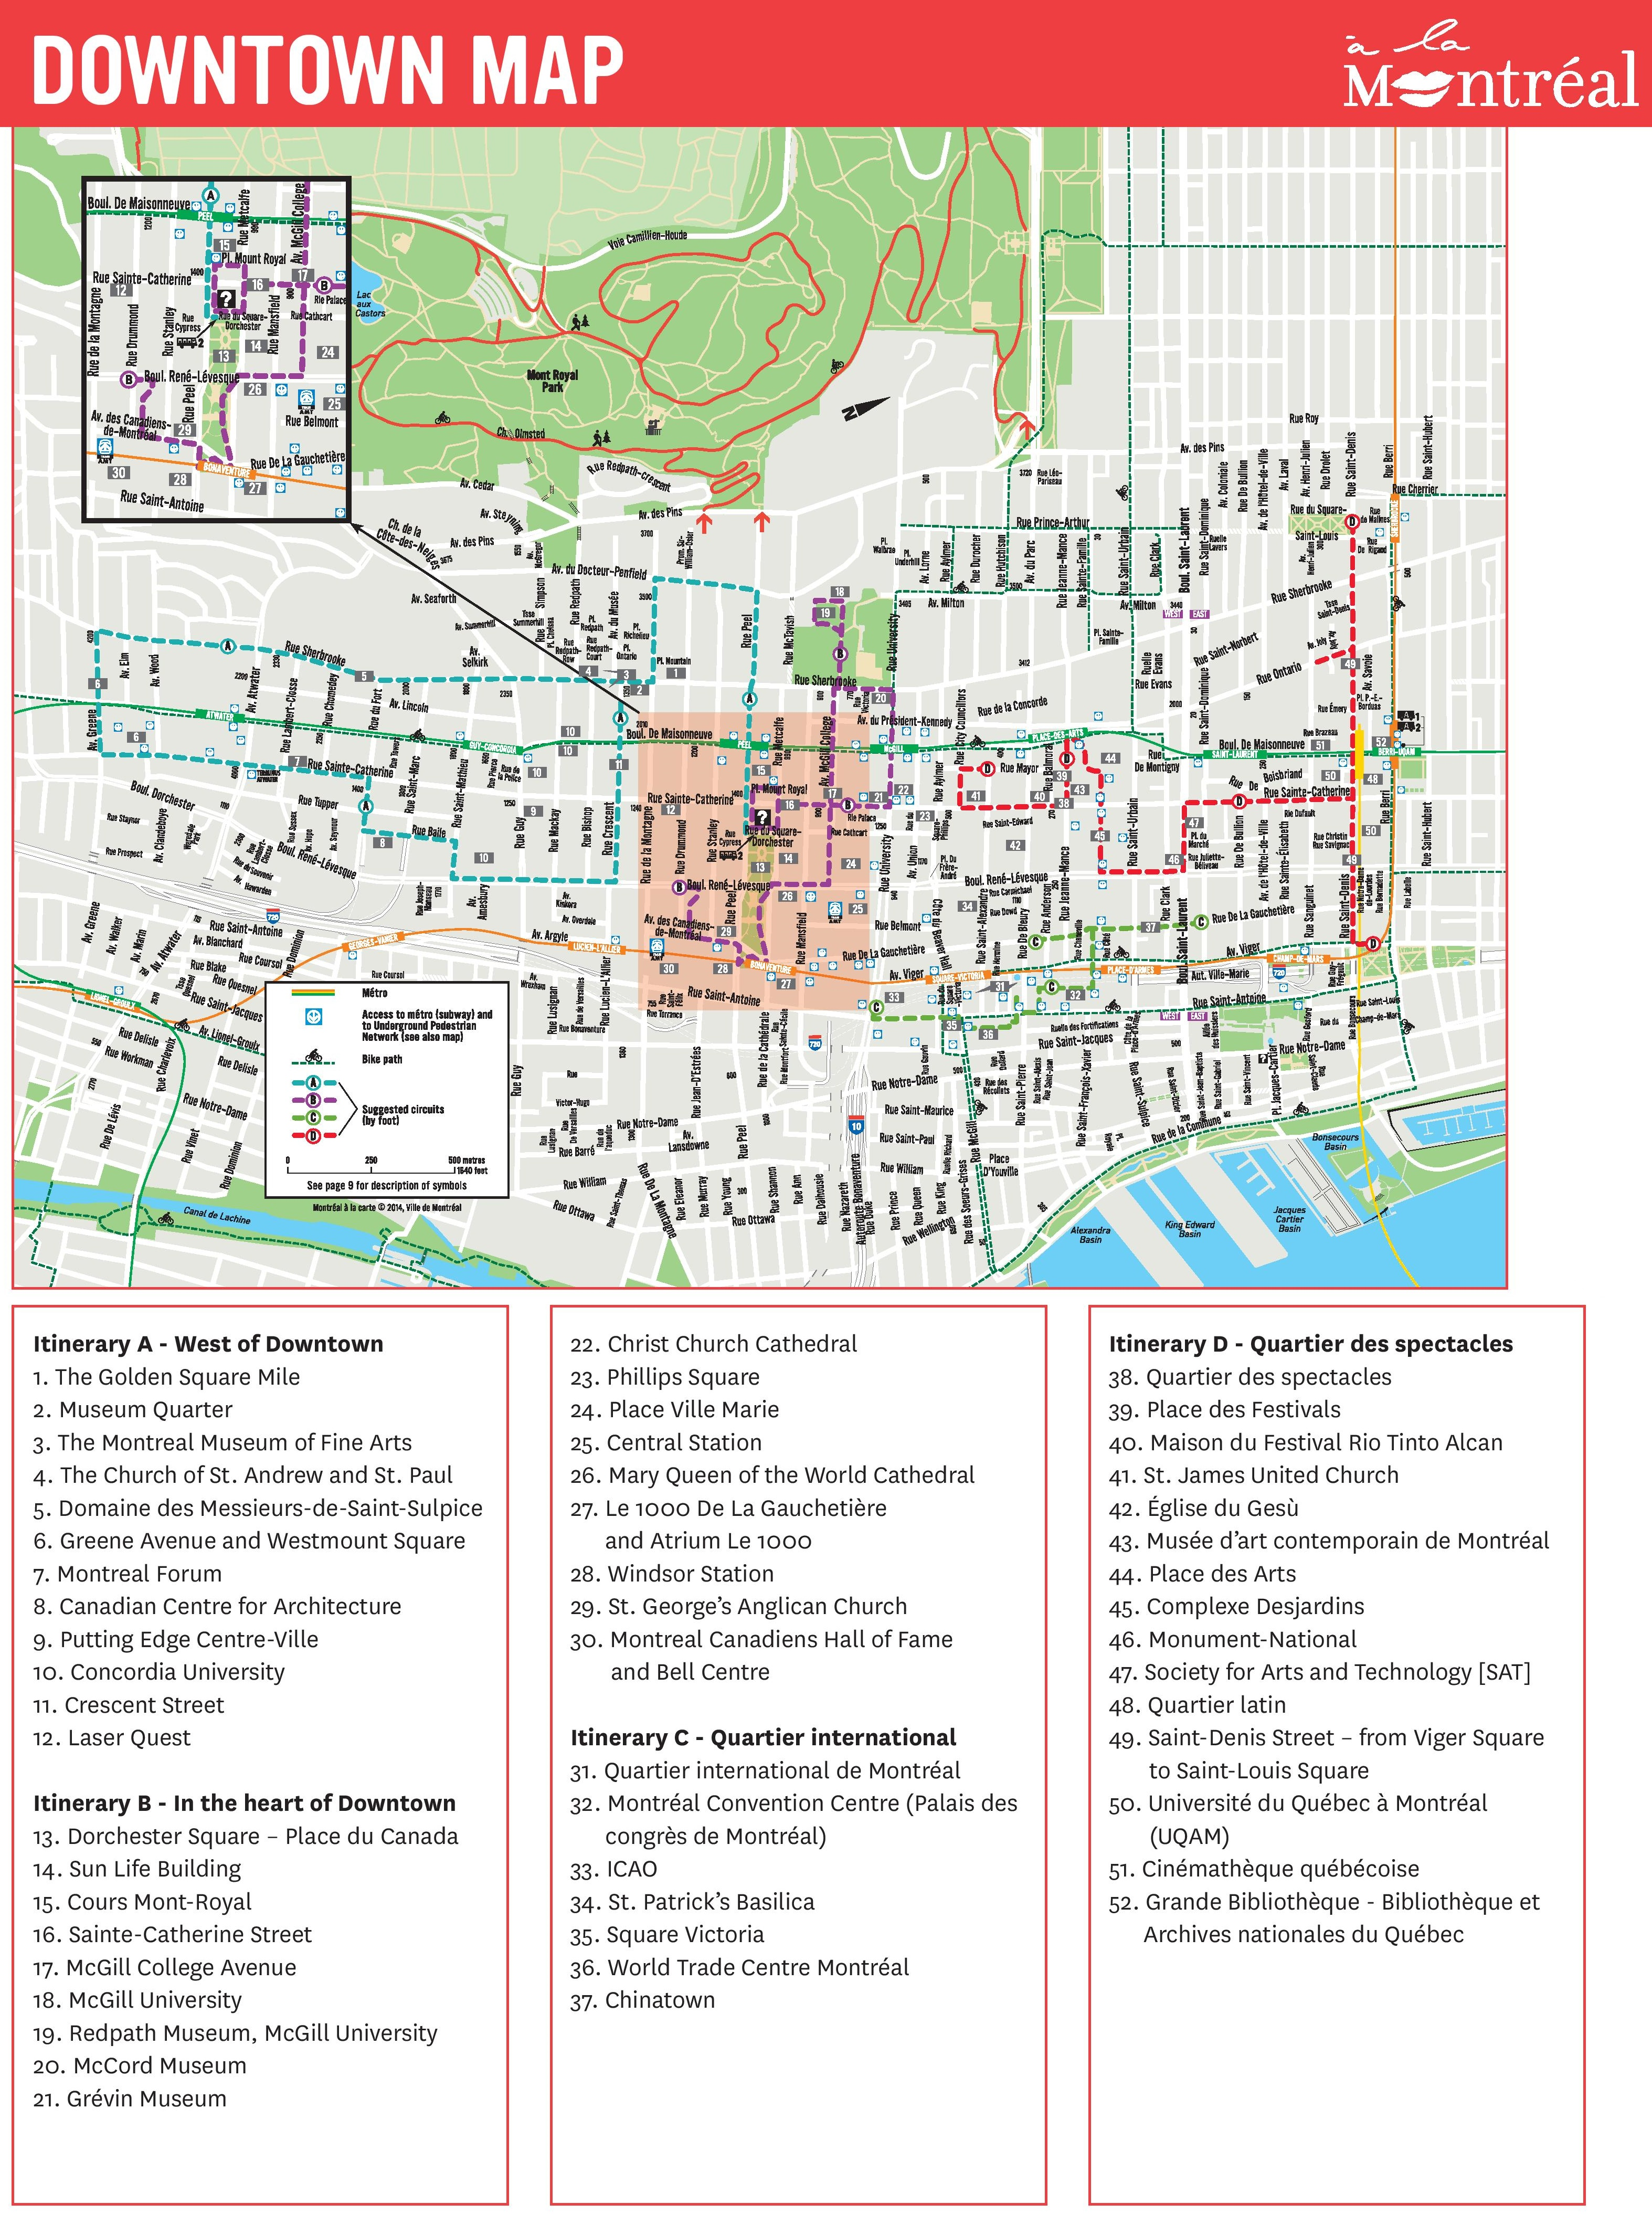 Montreal Downtown Map Montreal downtown map Montreal Downtown Map